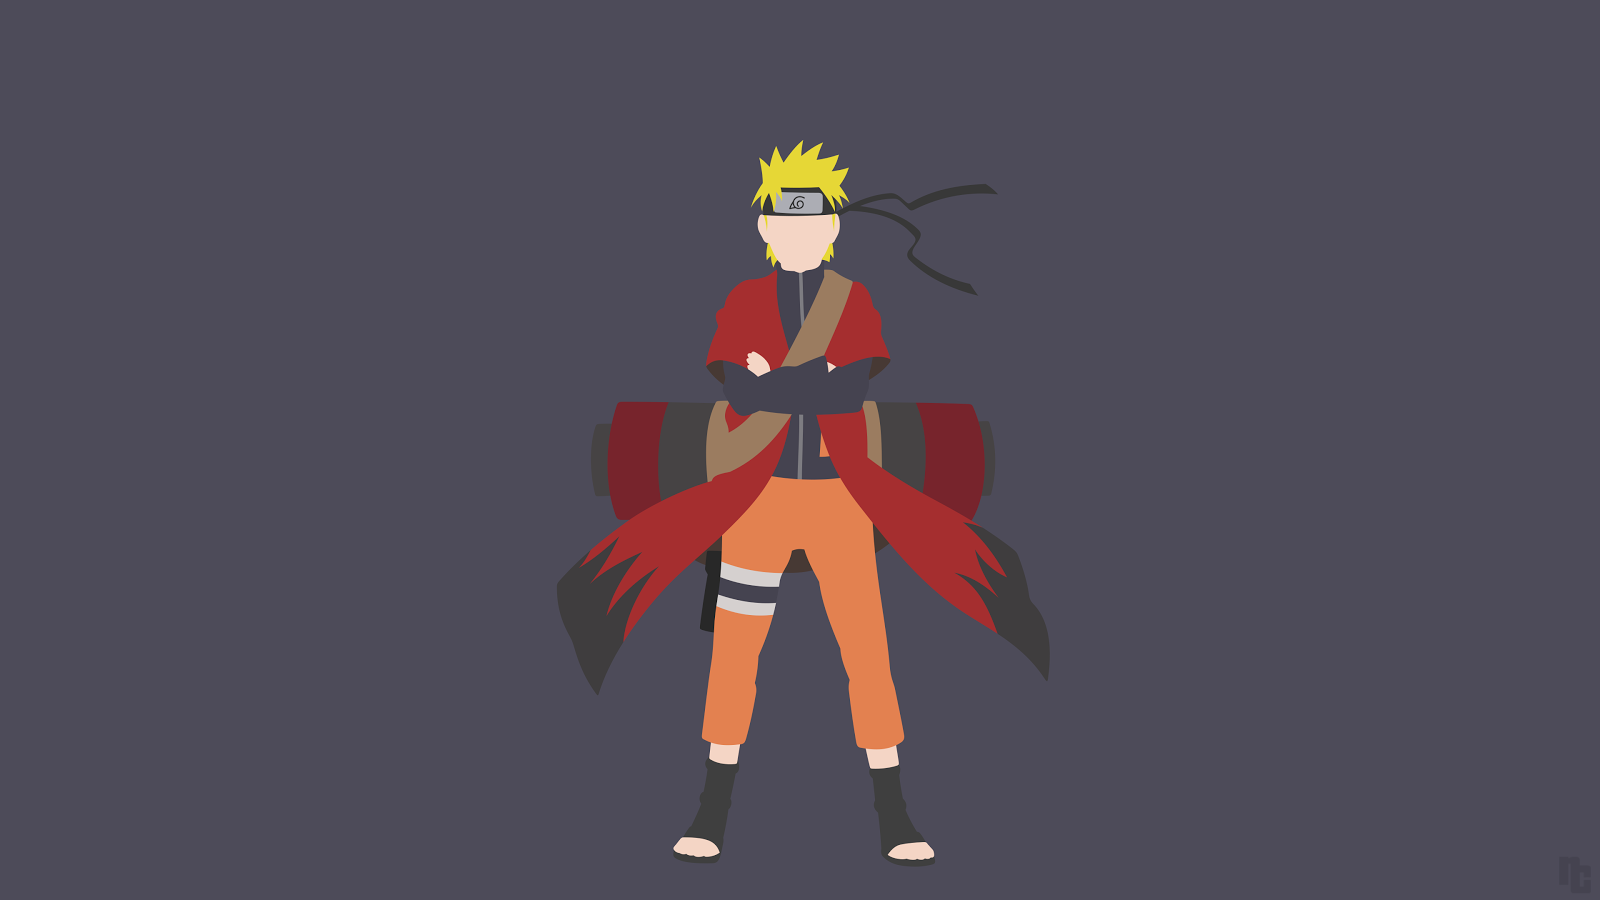 Minimalist Anime wallpaper 2.0.2 APK Download - Android ...